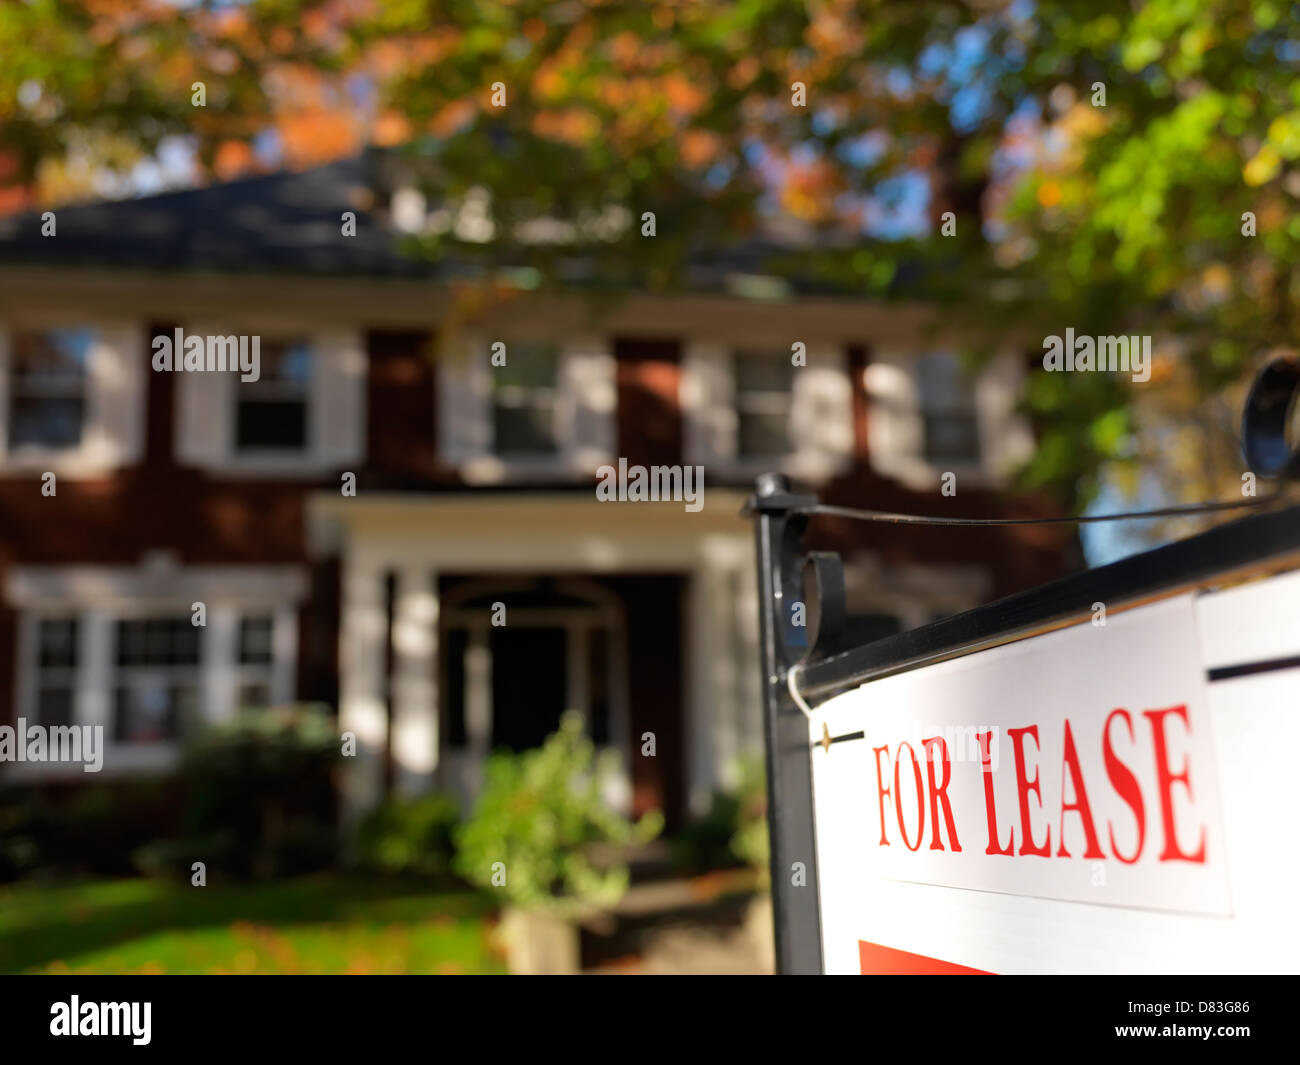 For lease sign in front of a large house in fall. Toronto, Ontario, Canada. - Stock Image